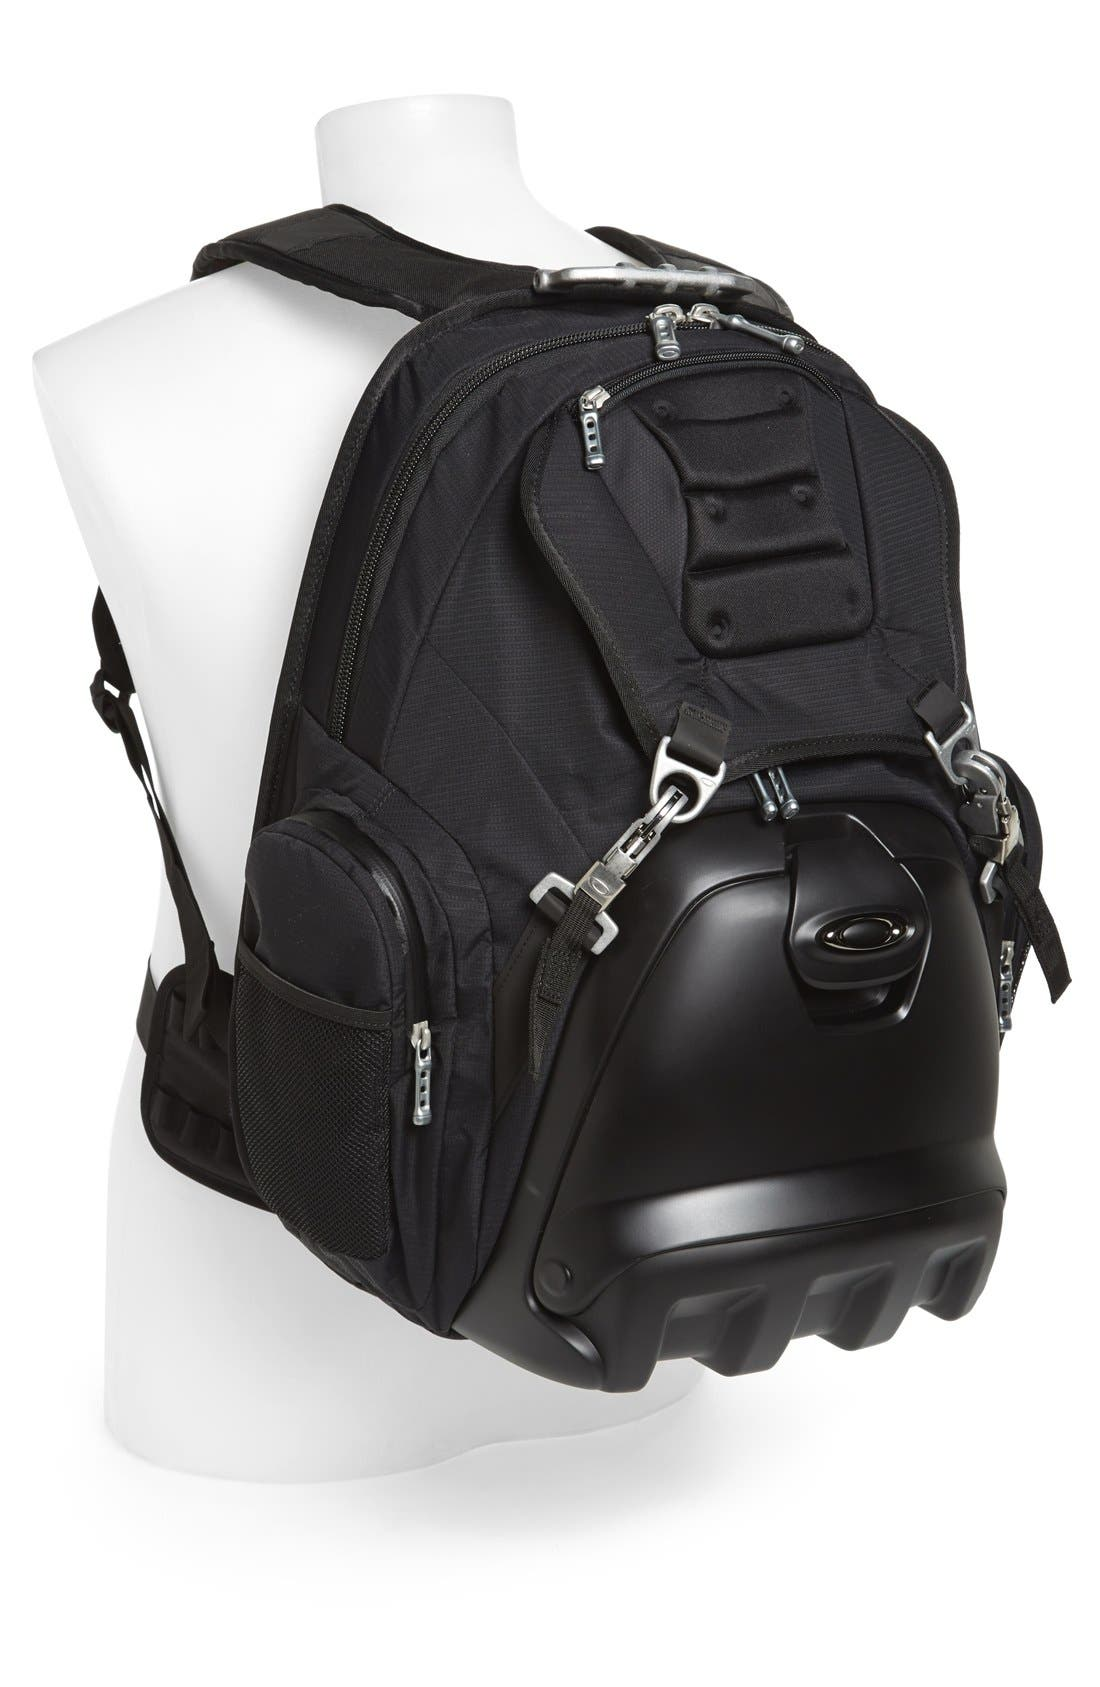 'Lunch Box' Cooler Backpack,                             Alternate thumbnail 2, color,                             001